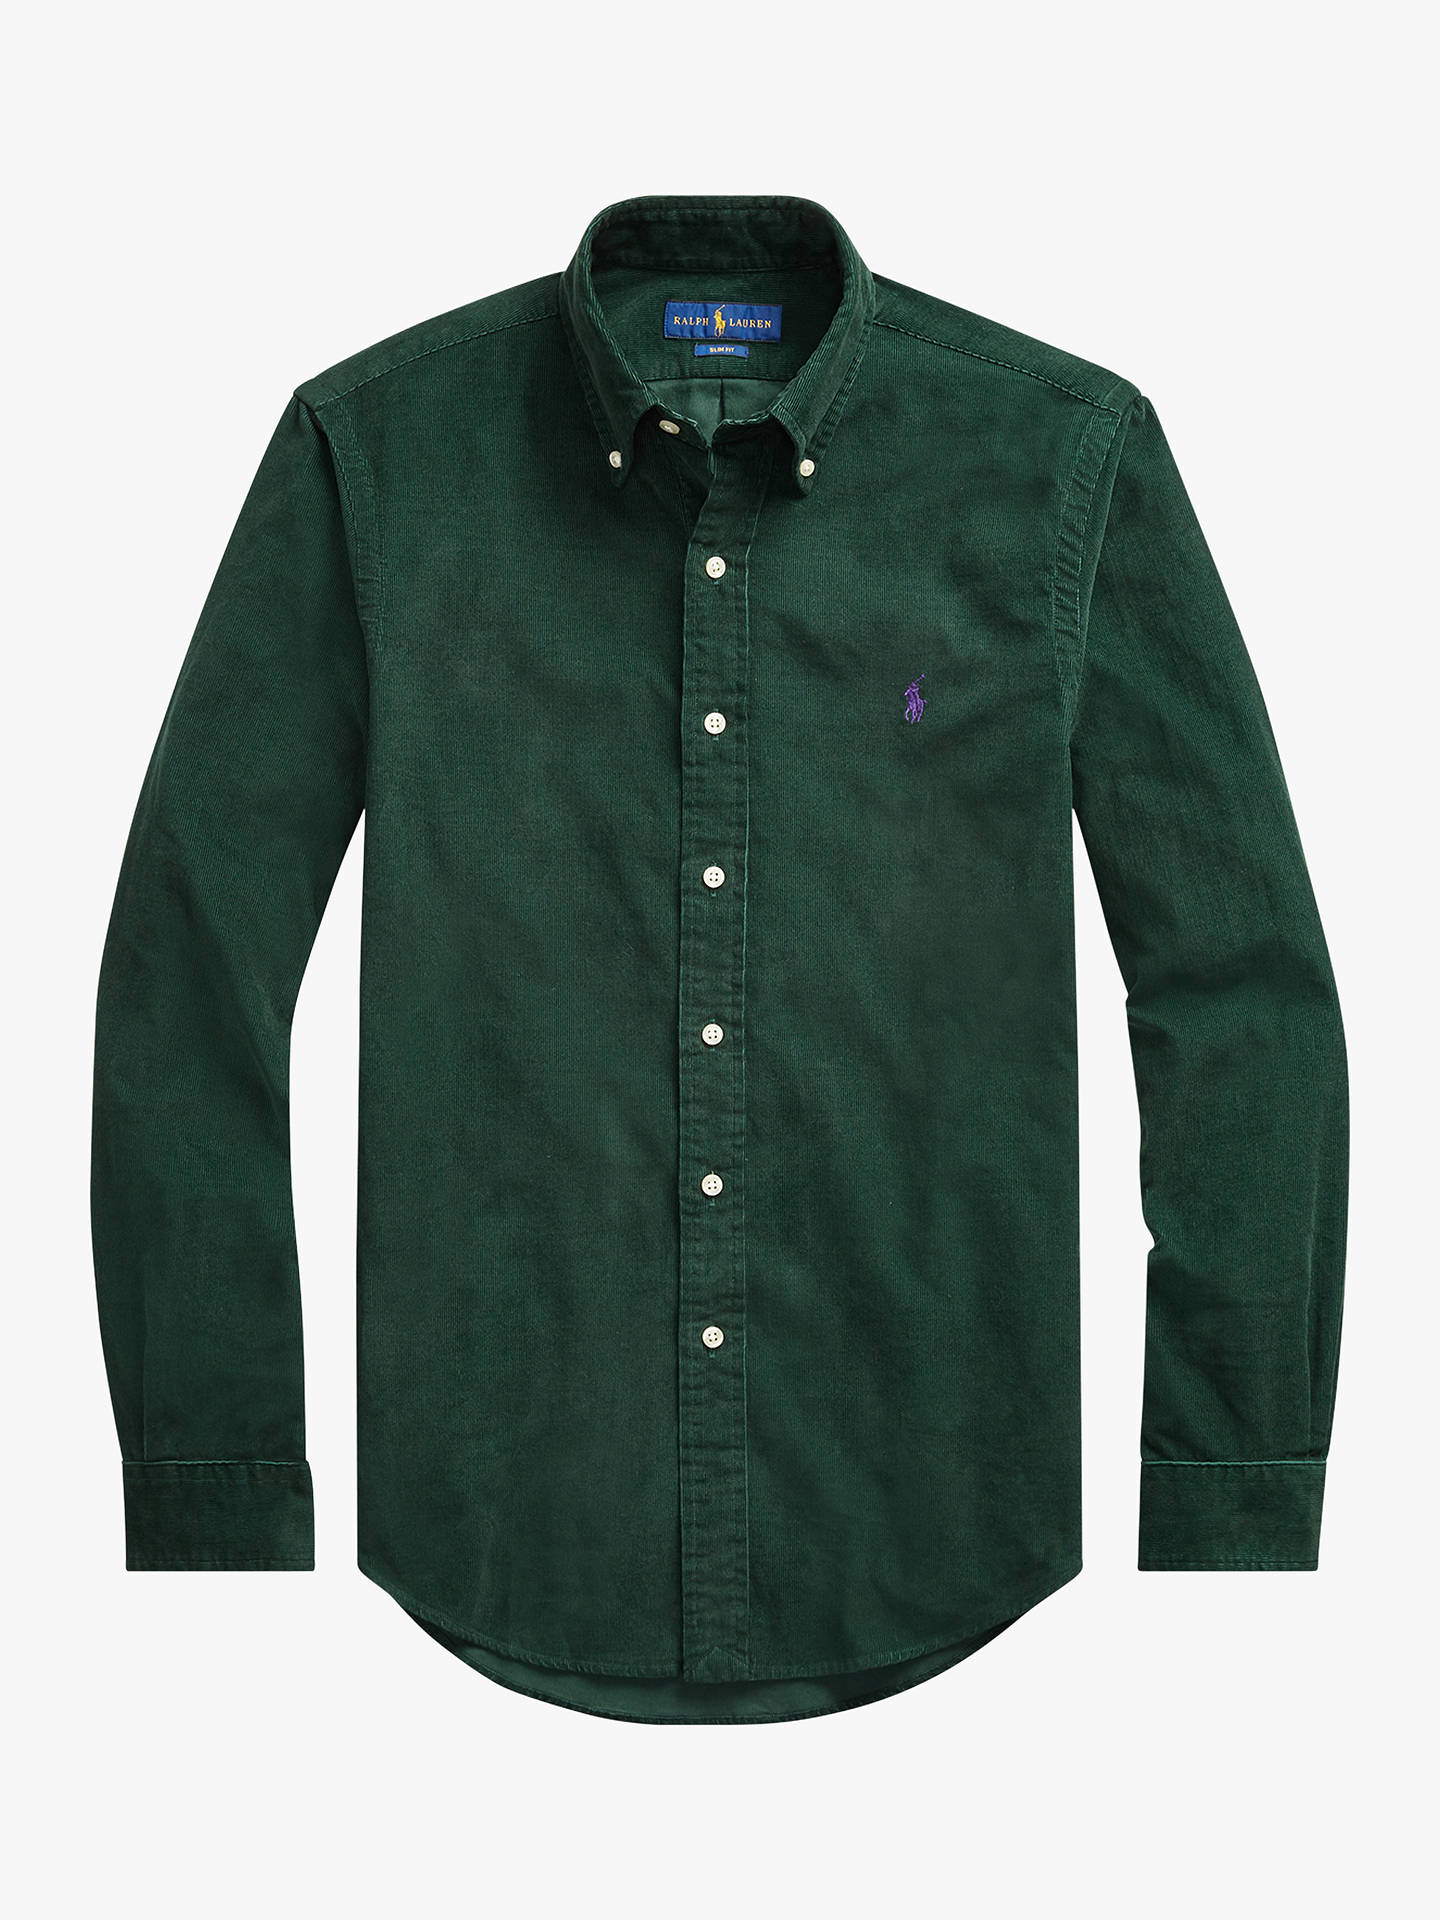 Buy Polo Ralph Lauren Corduroy Sports Shirt, College Green, S Online at johnlewis.com